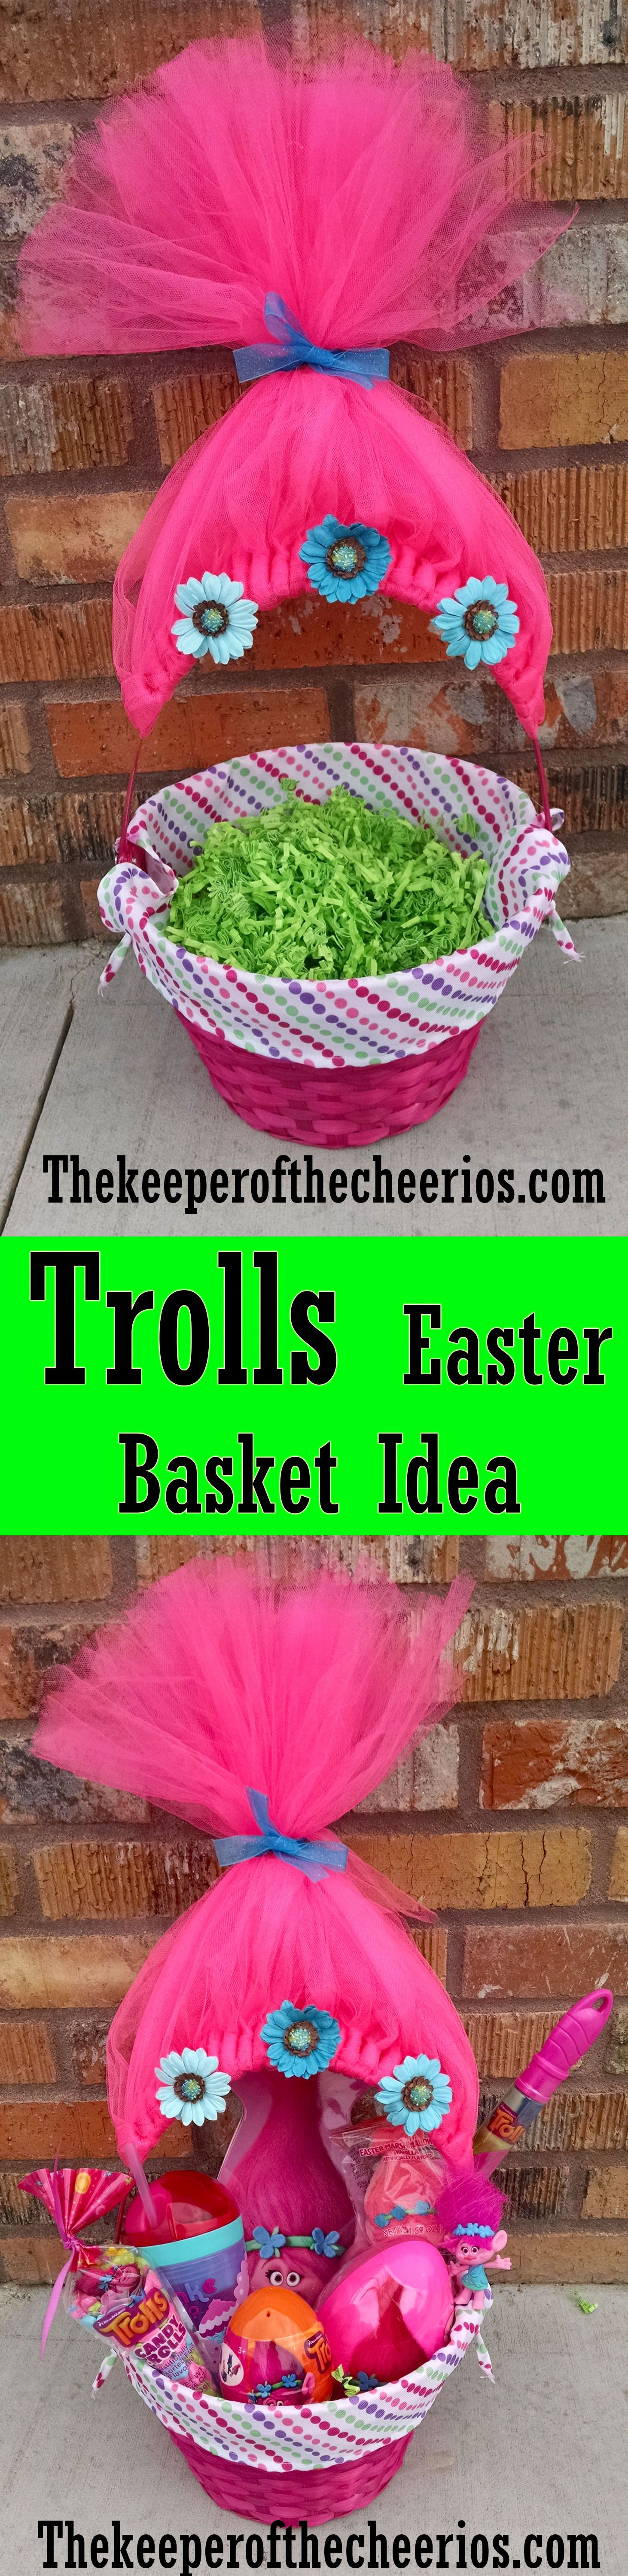 Outdoor easter decorations pinterest - Trolls Movie Easter Basket Idea